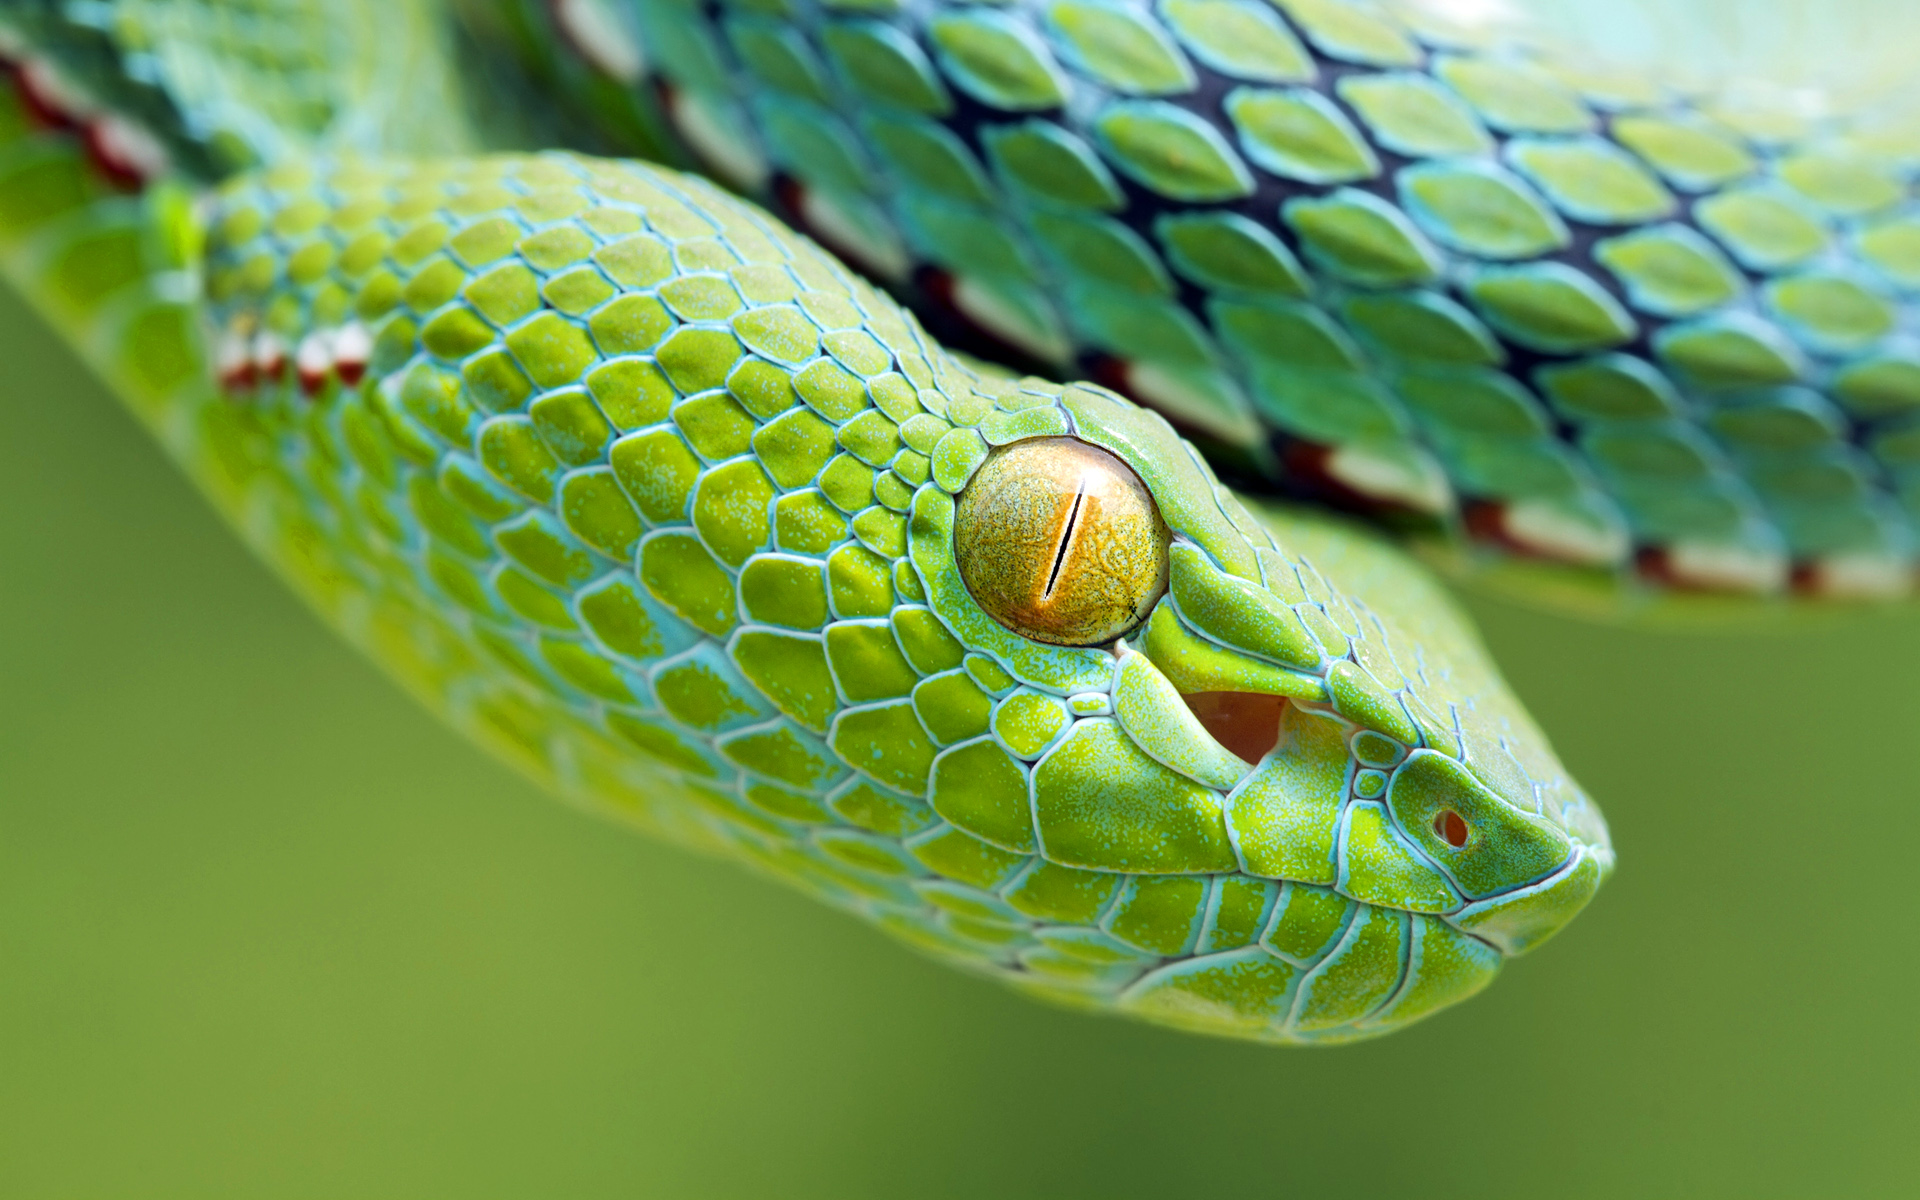 green snake face wallpaper background images wallpapers